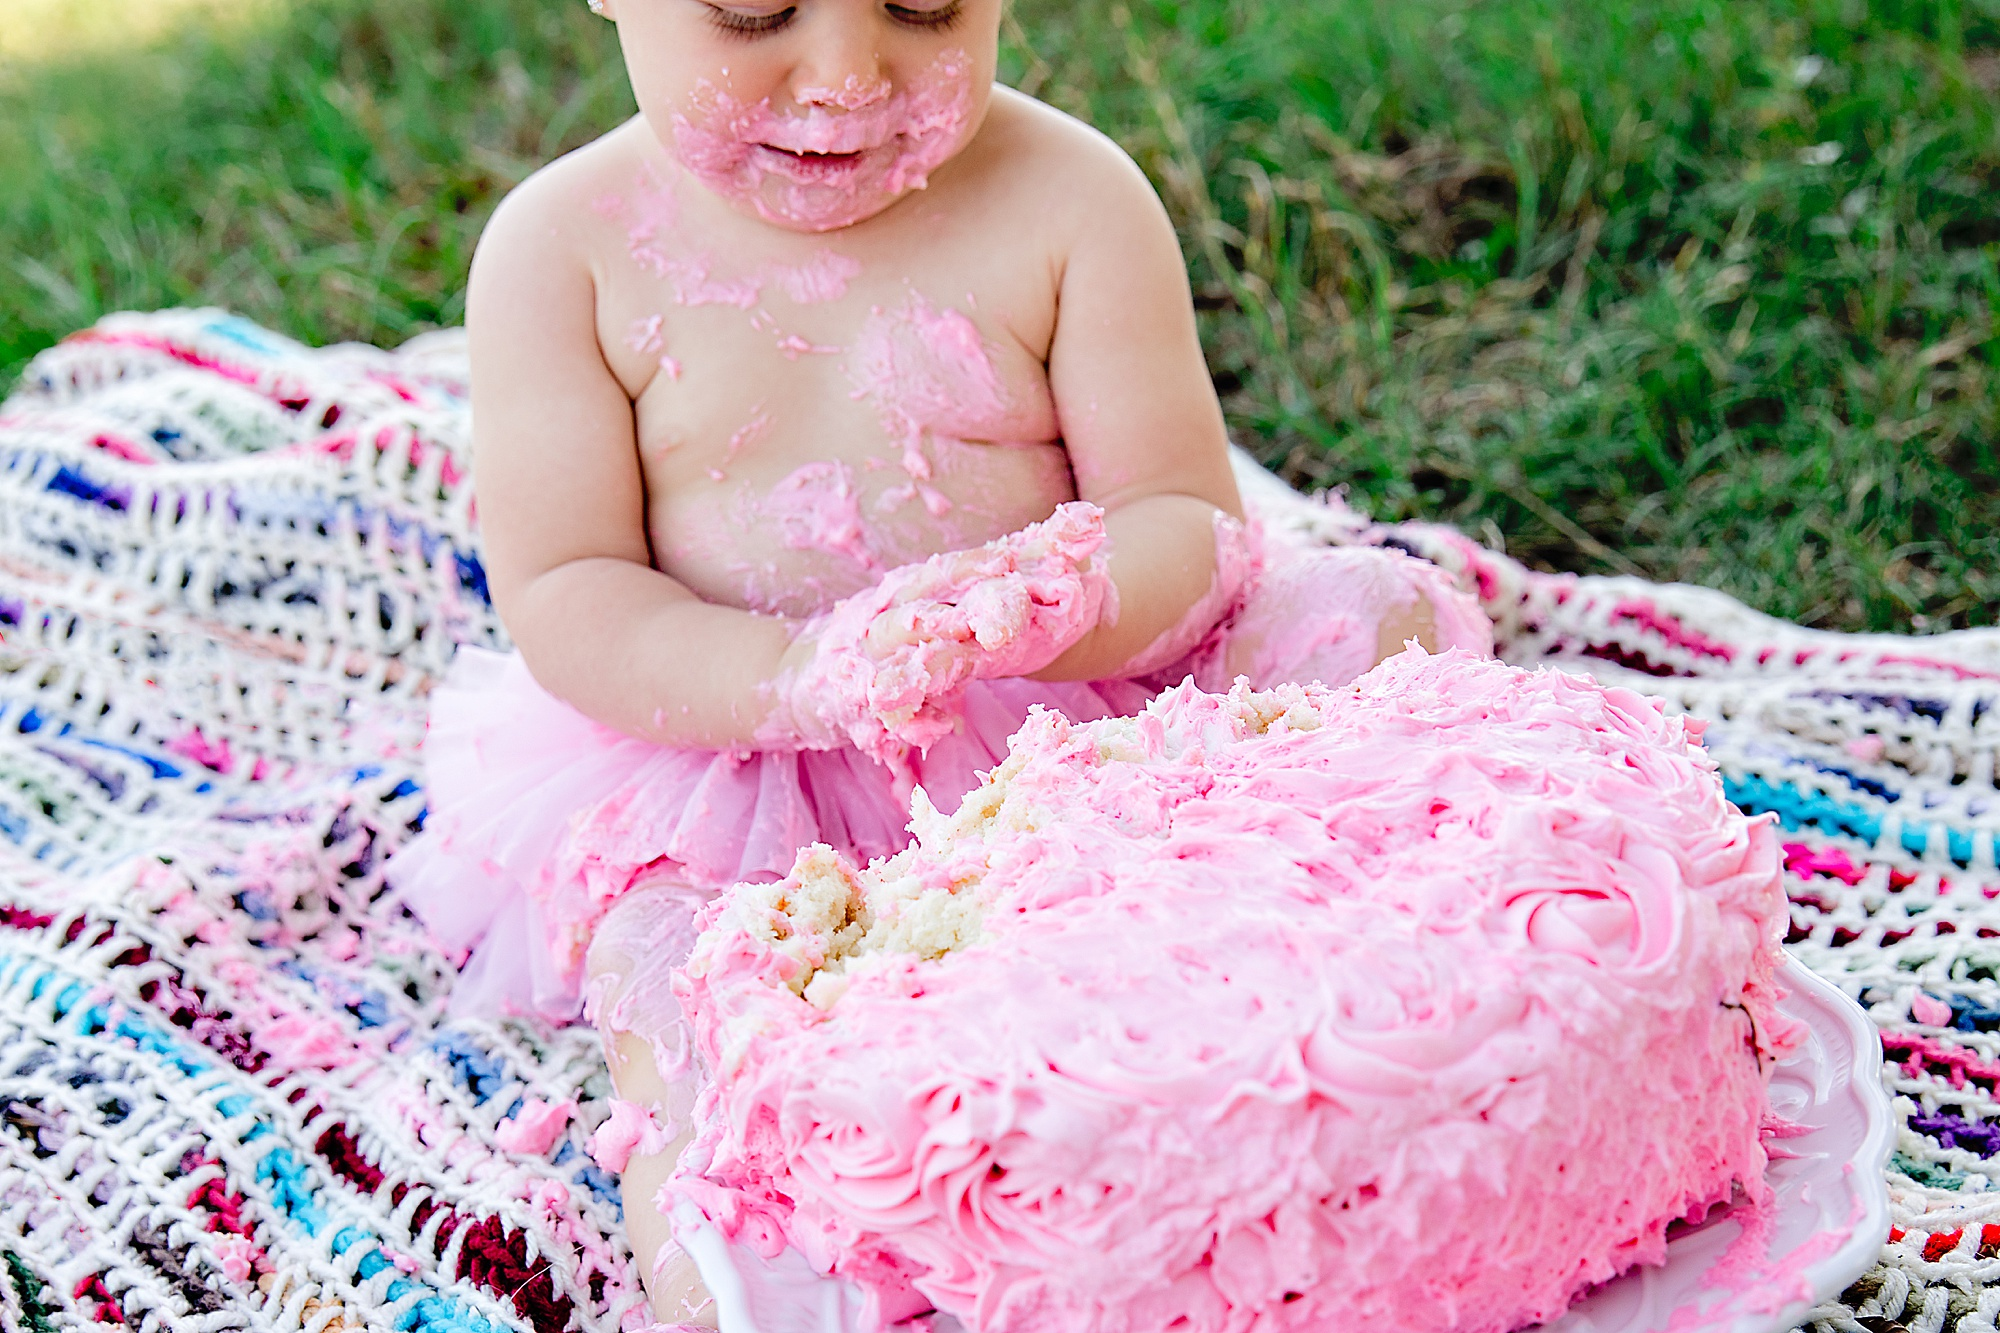 Family-photographer-Cake-Smash-one-year-birthday-pink-theme-carly-barton-photography_0006.jpg